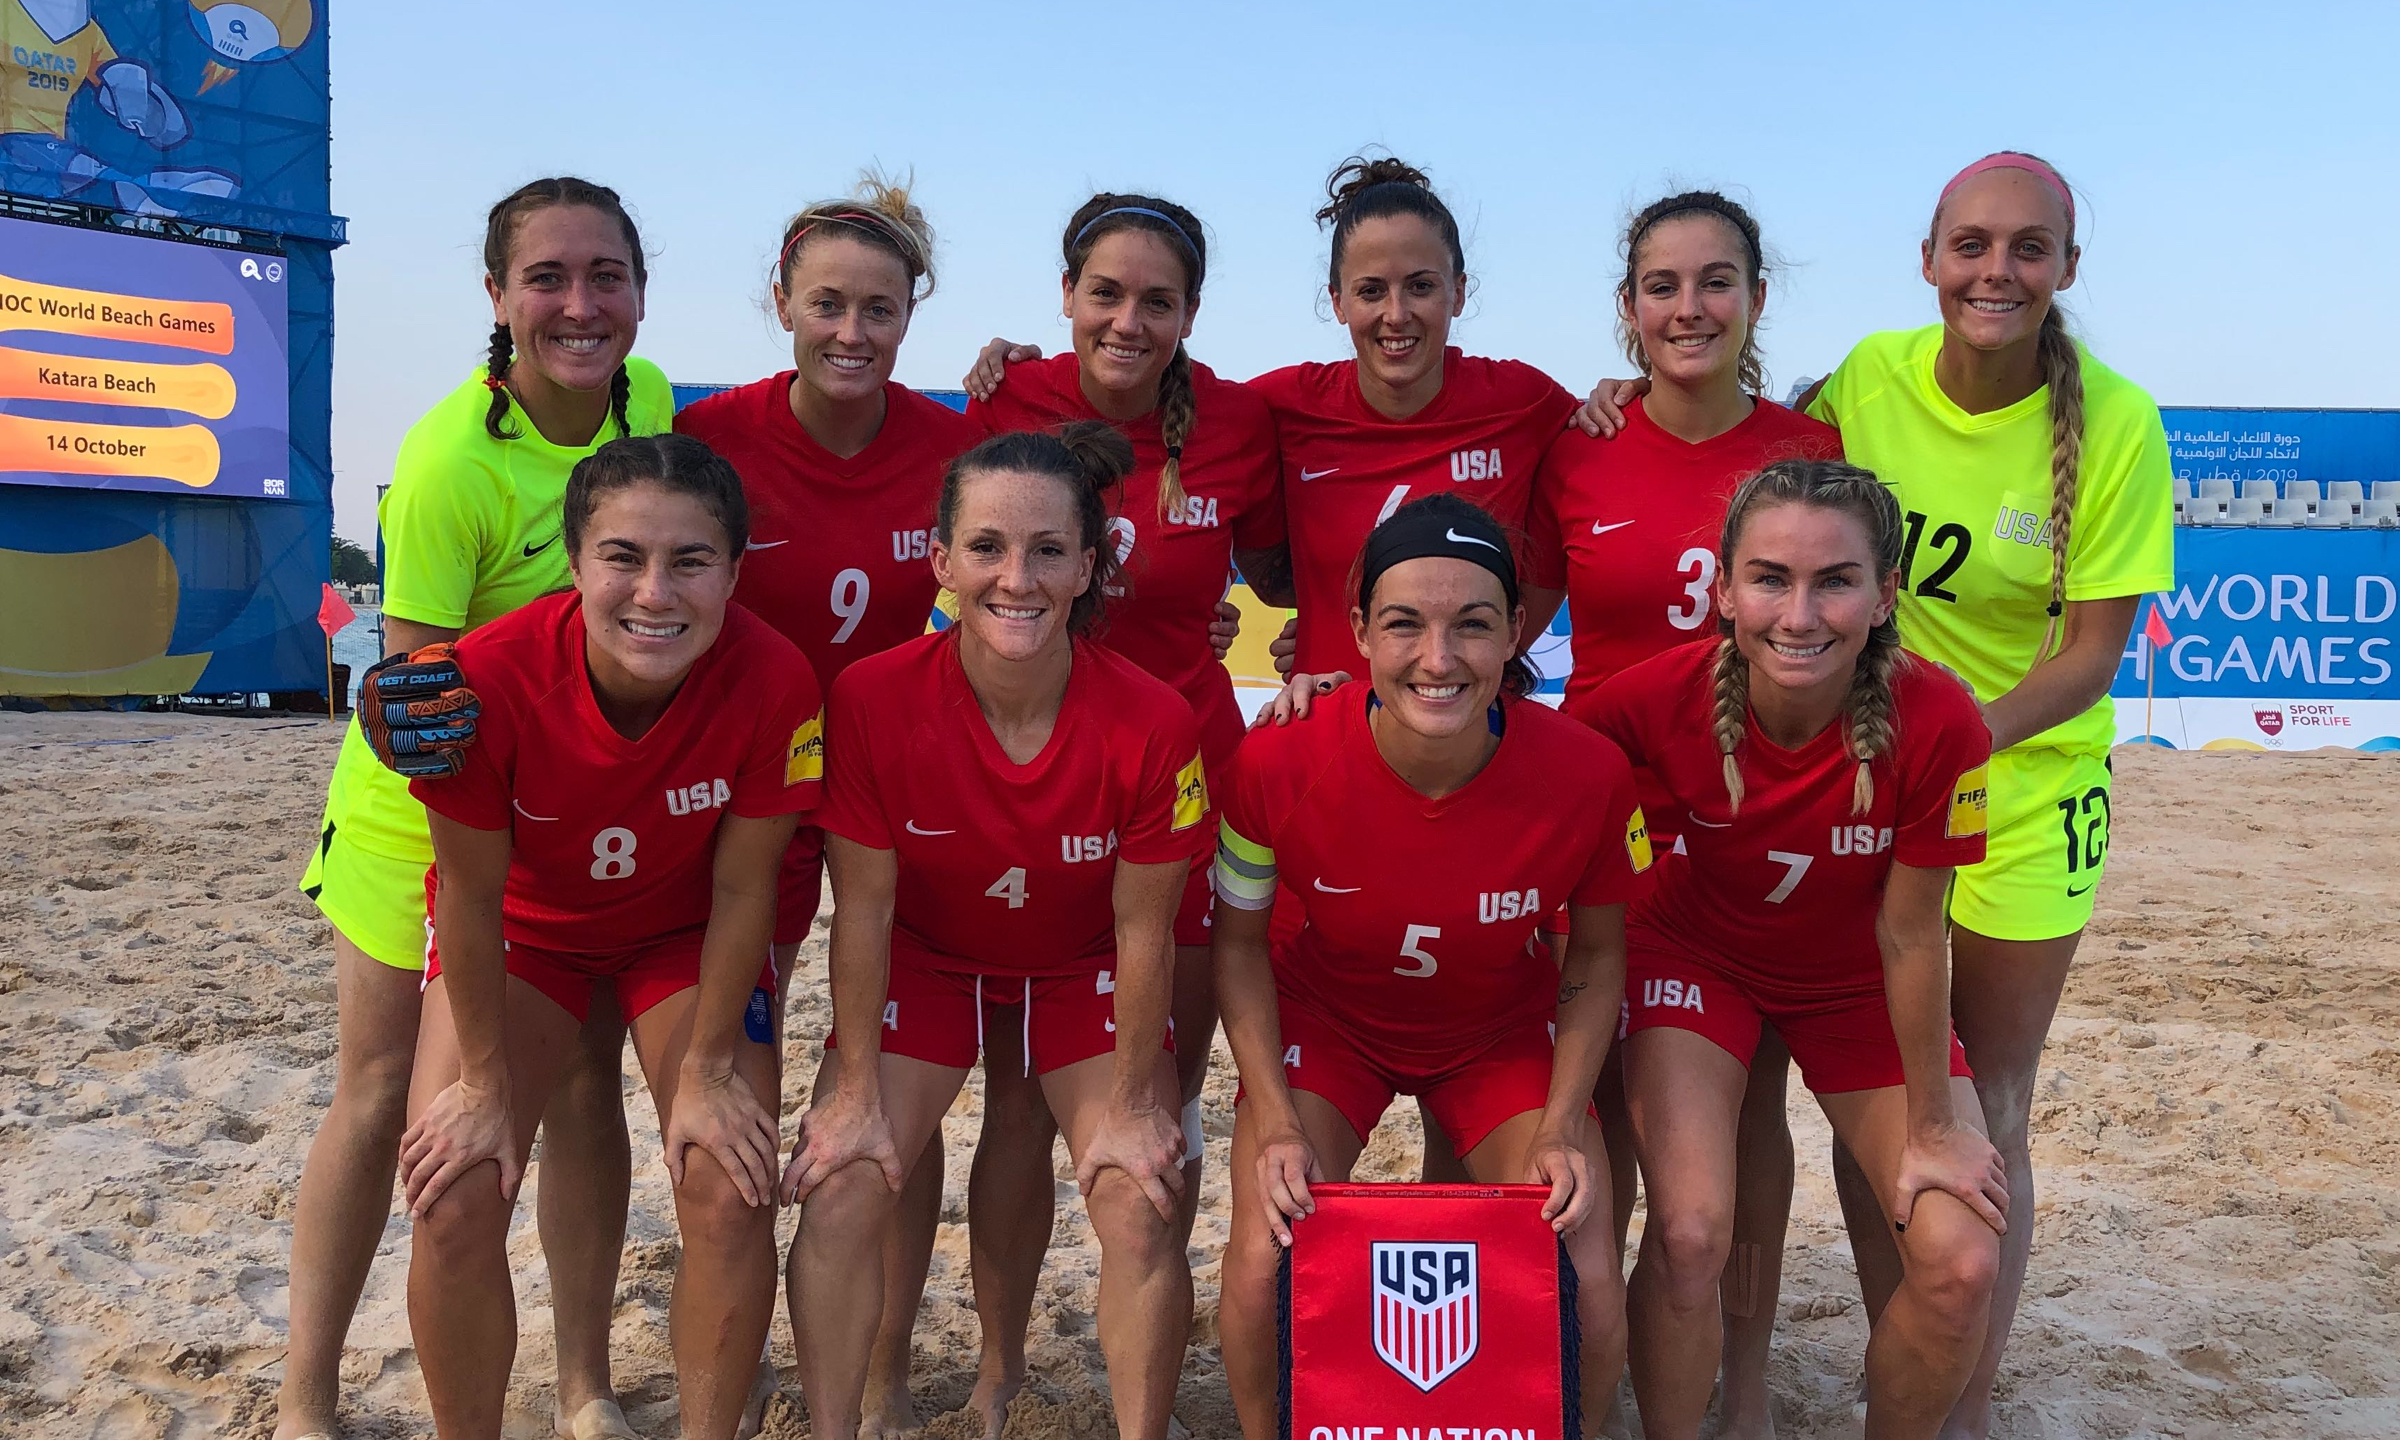 U.S. WOMEN'S BEACH SOCCER NATIONAL TEAM